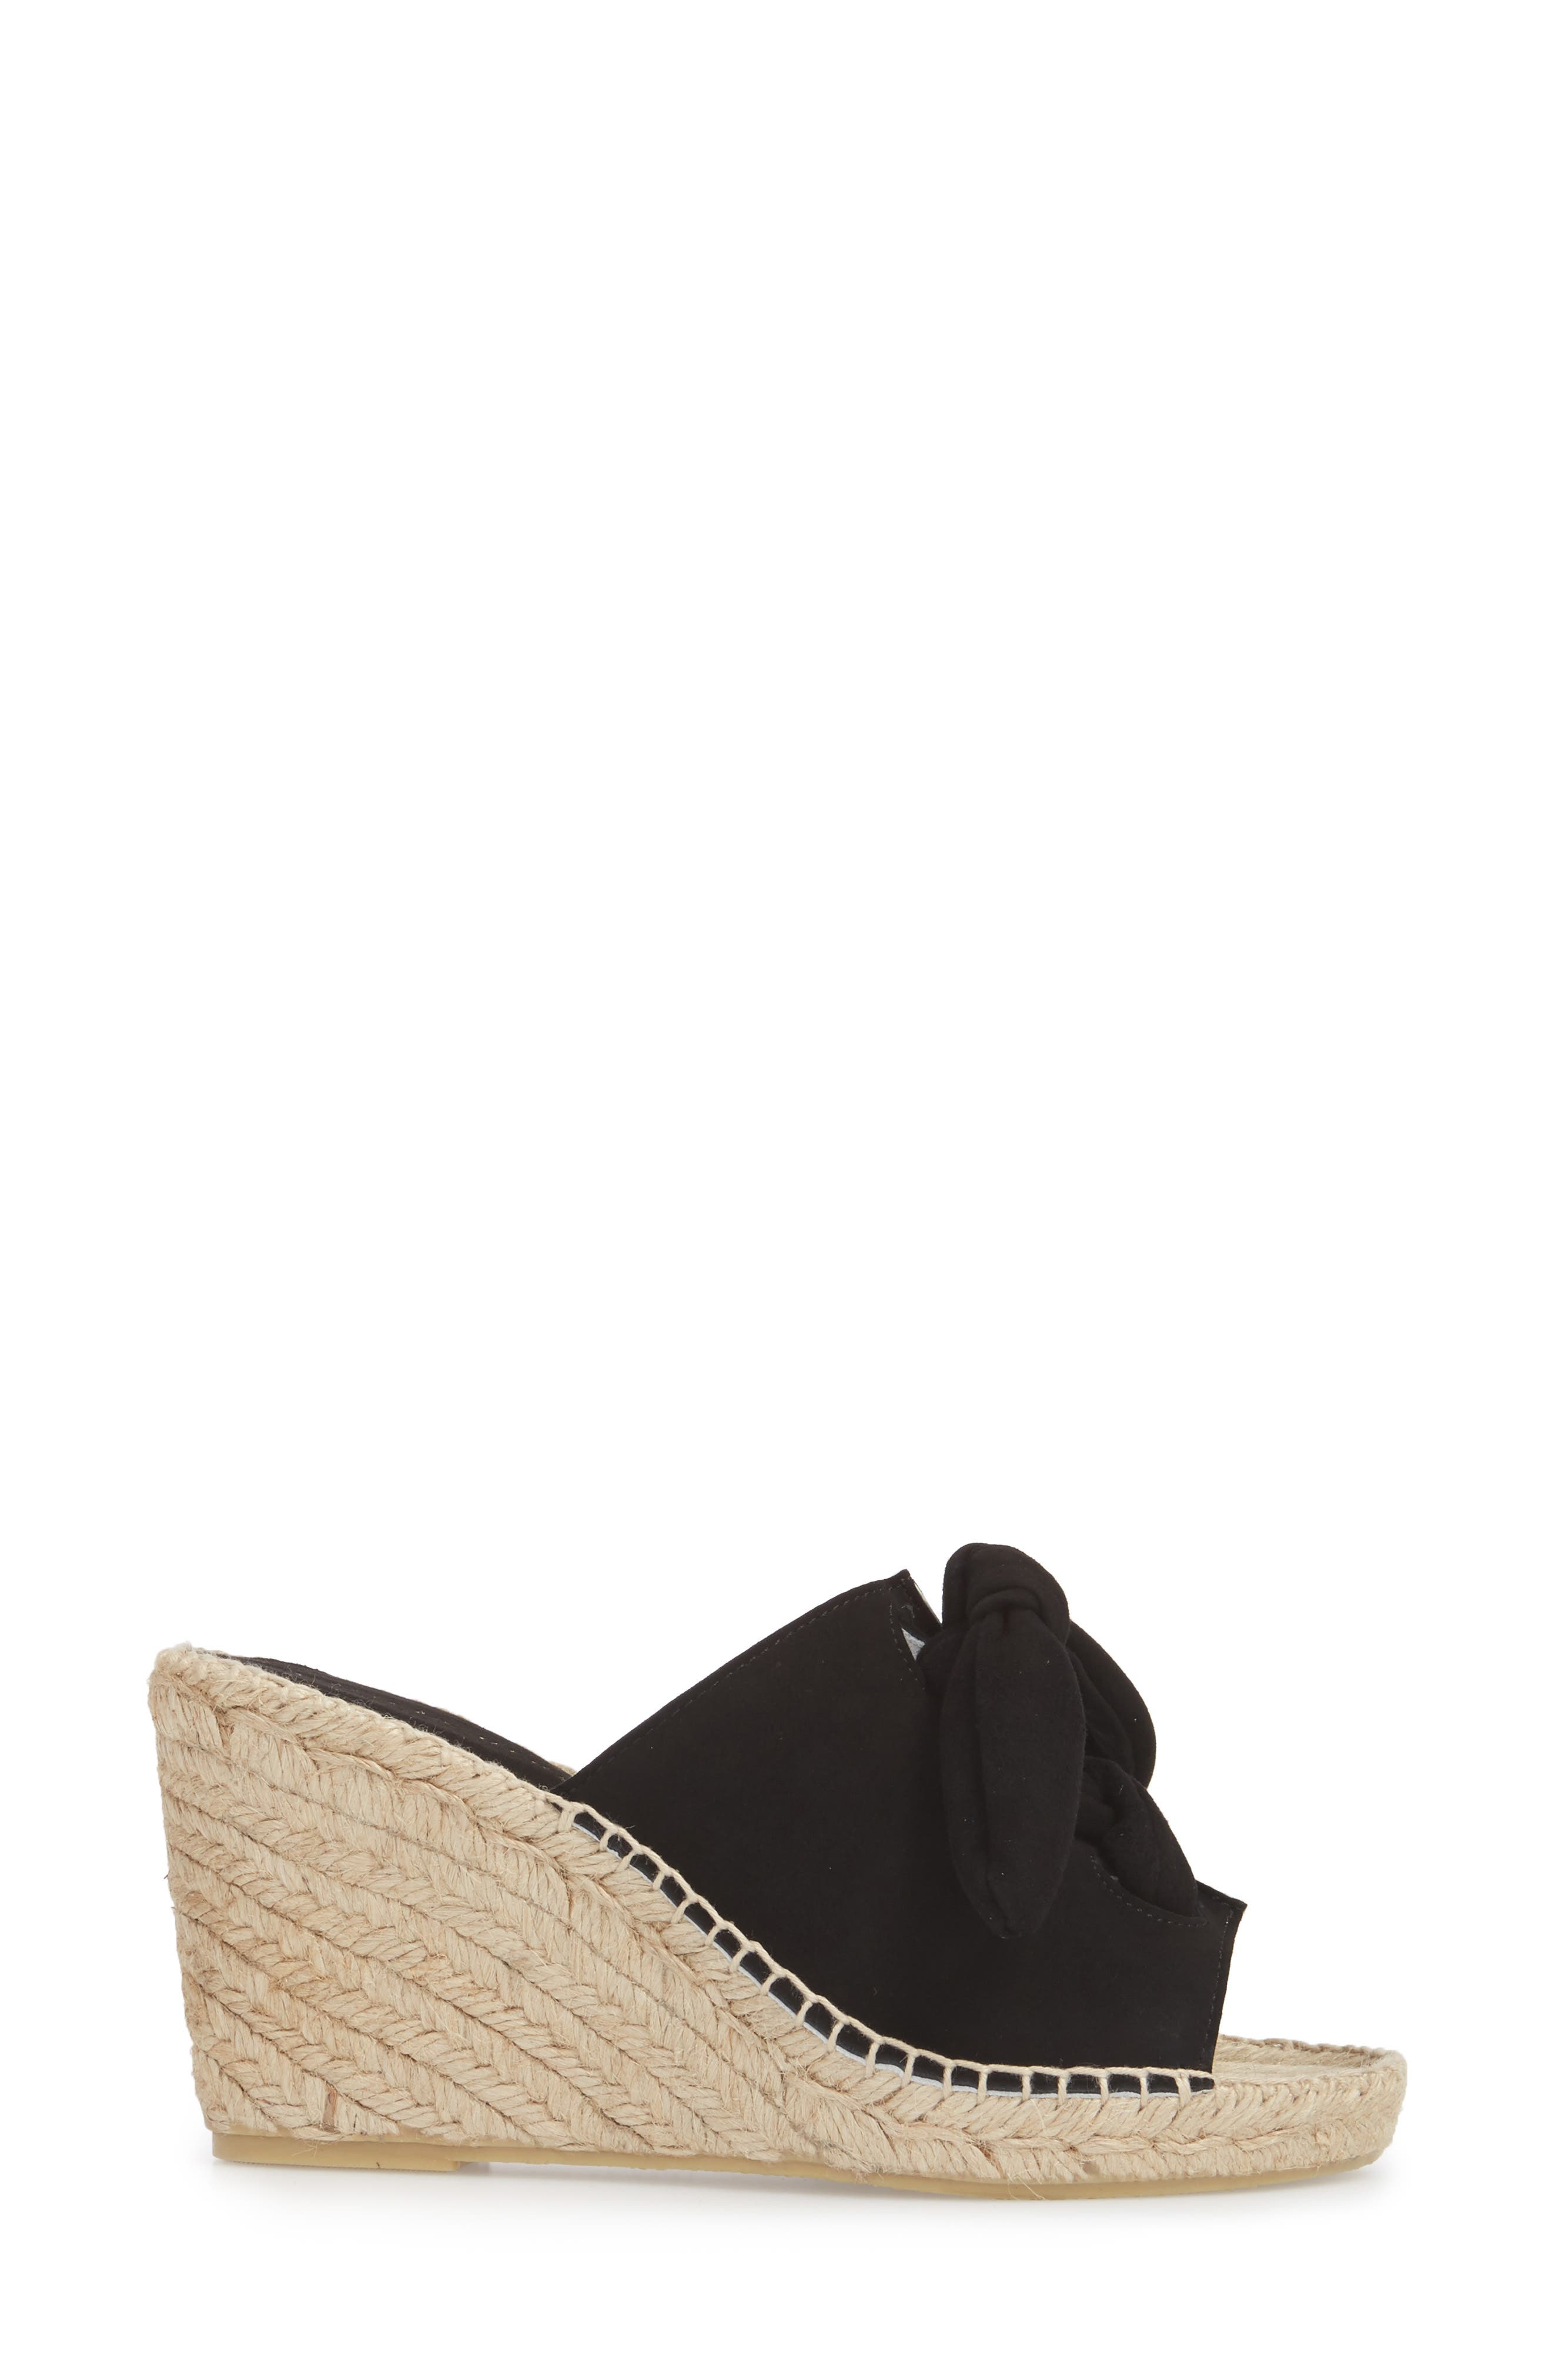 Flirt Espadrille Wedge Sandal,                             Alternate thumbnail 3, color,                             Black Suede